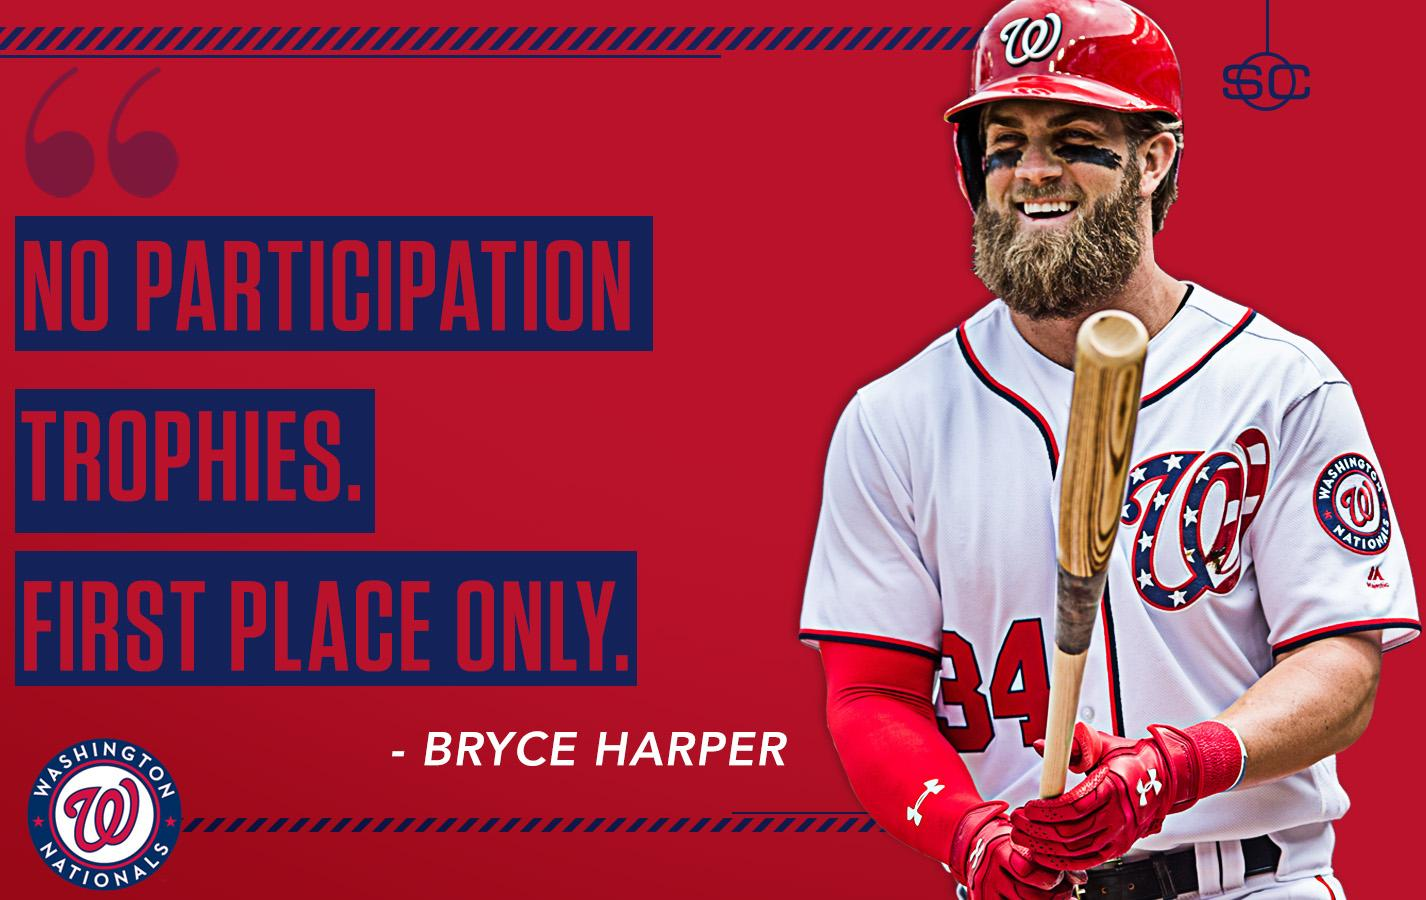 Bryce Harper offered his short-and-sweet recipe for how to be a winner to little leaguers. https://t.co/d1LPyC65yI https://t.co/ctD8ufySUN